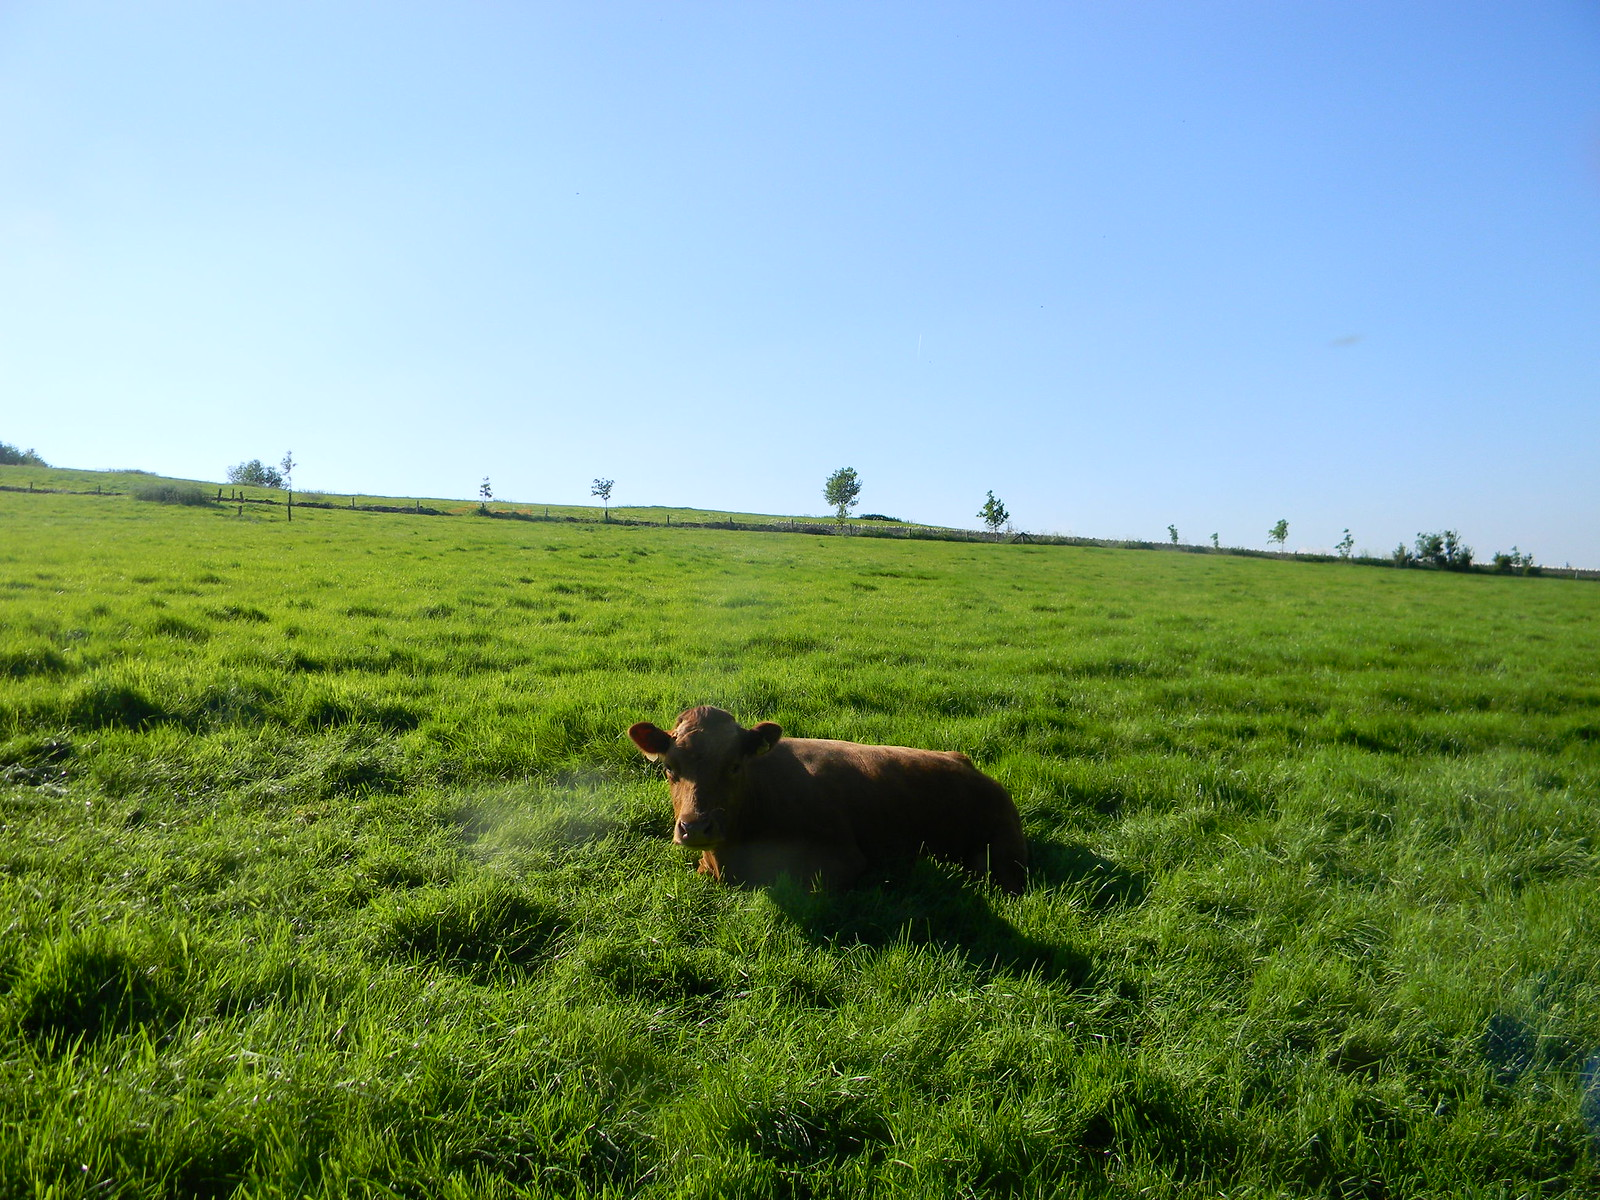 Cow in a field Moreton-in-Marsh Circular